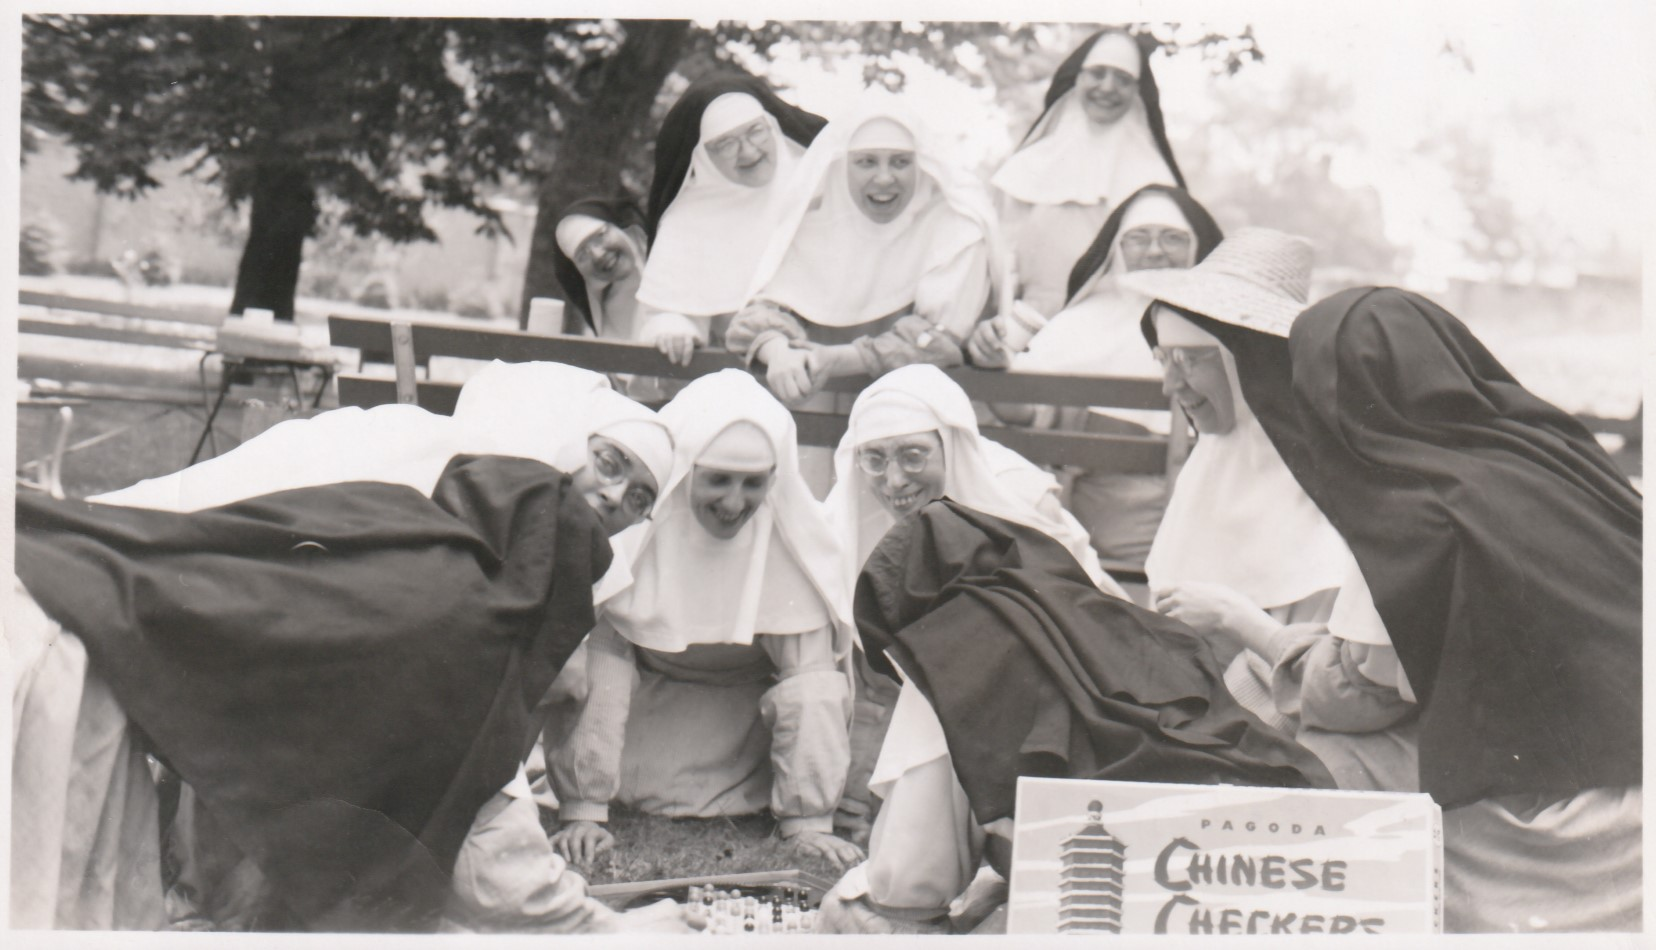 Playing Chinese Checkers at a picnic, early 1950s.jpg